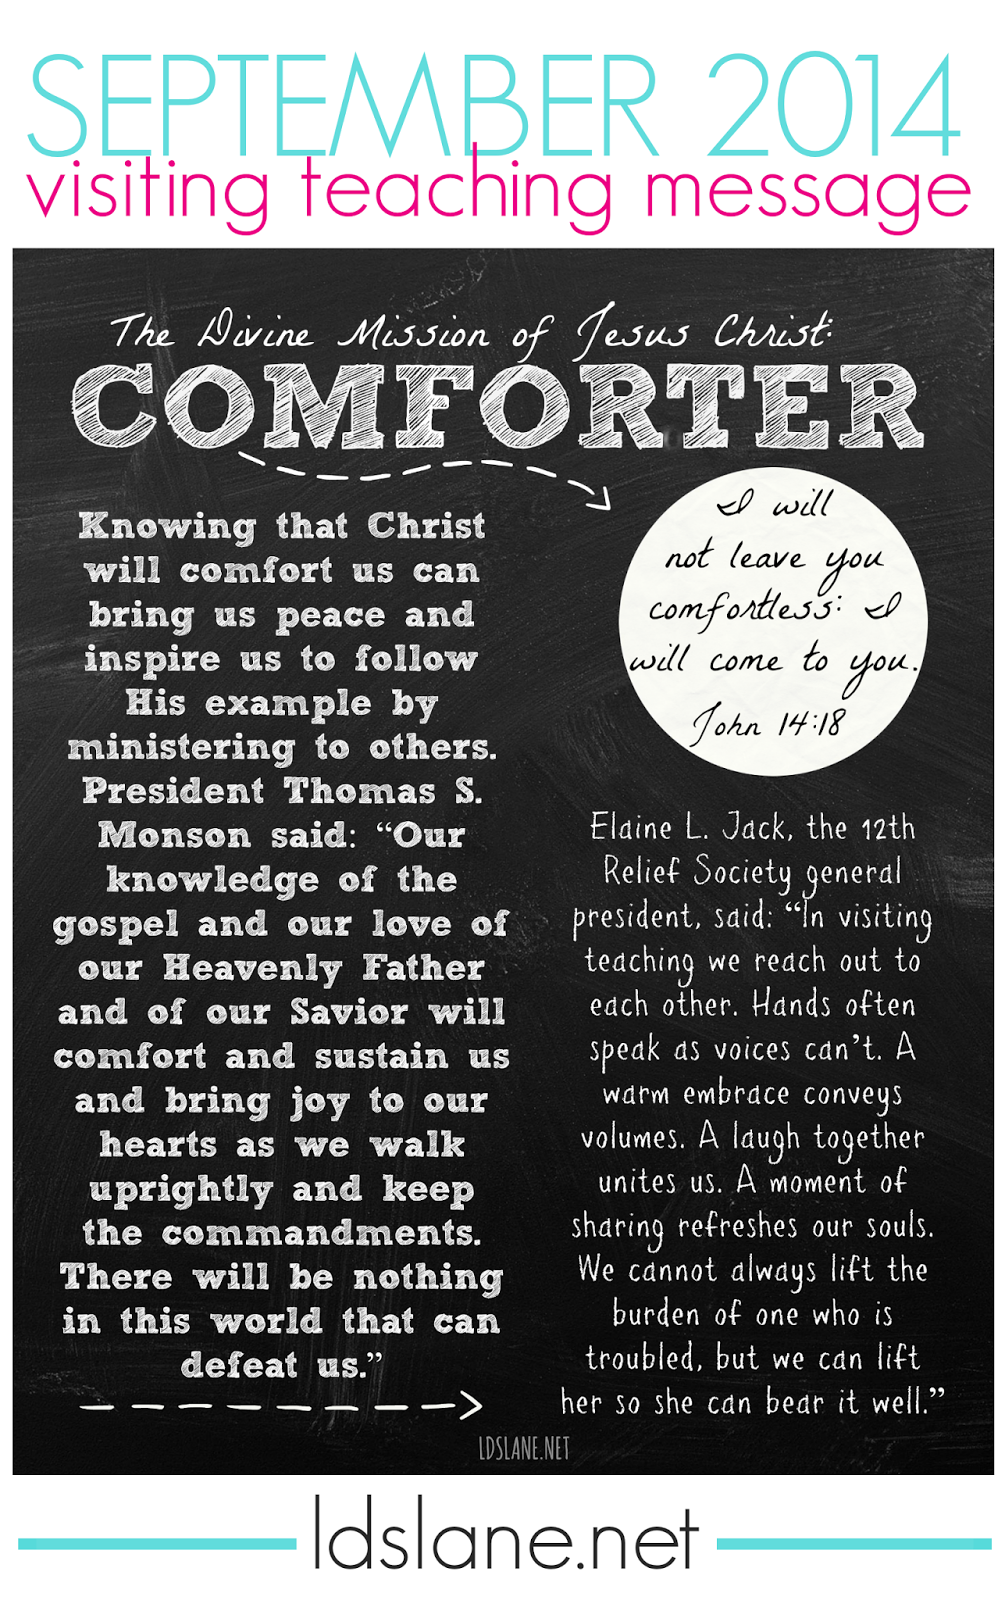 September 2014 Visiting Teaching Message - free download - Comforter  ldslane.net